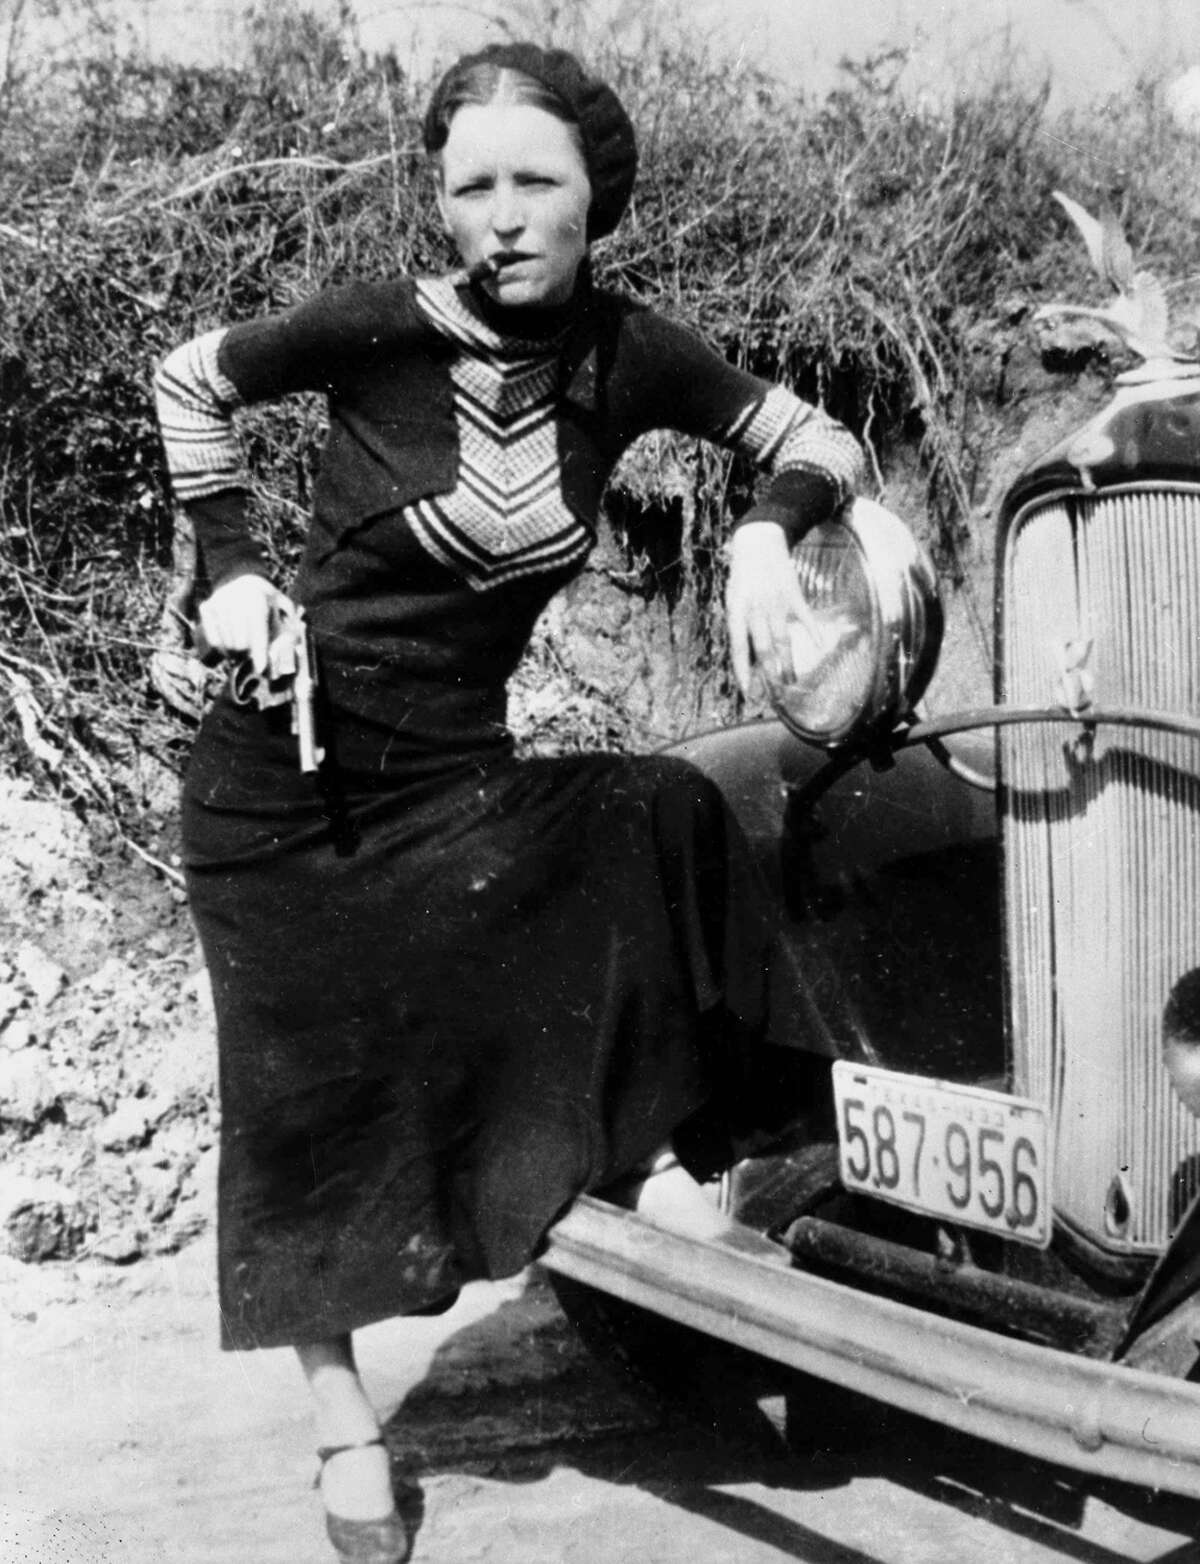 Bonnie Parker poses with a cigar and gun in a photo made infamous by the press, circa 1932.